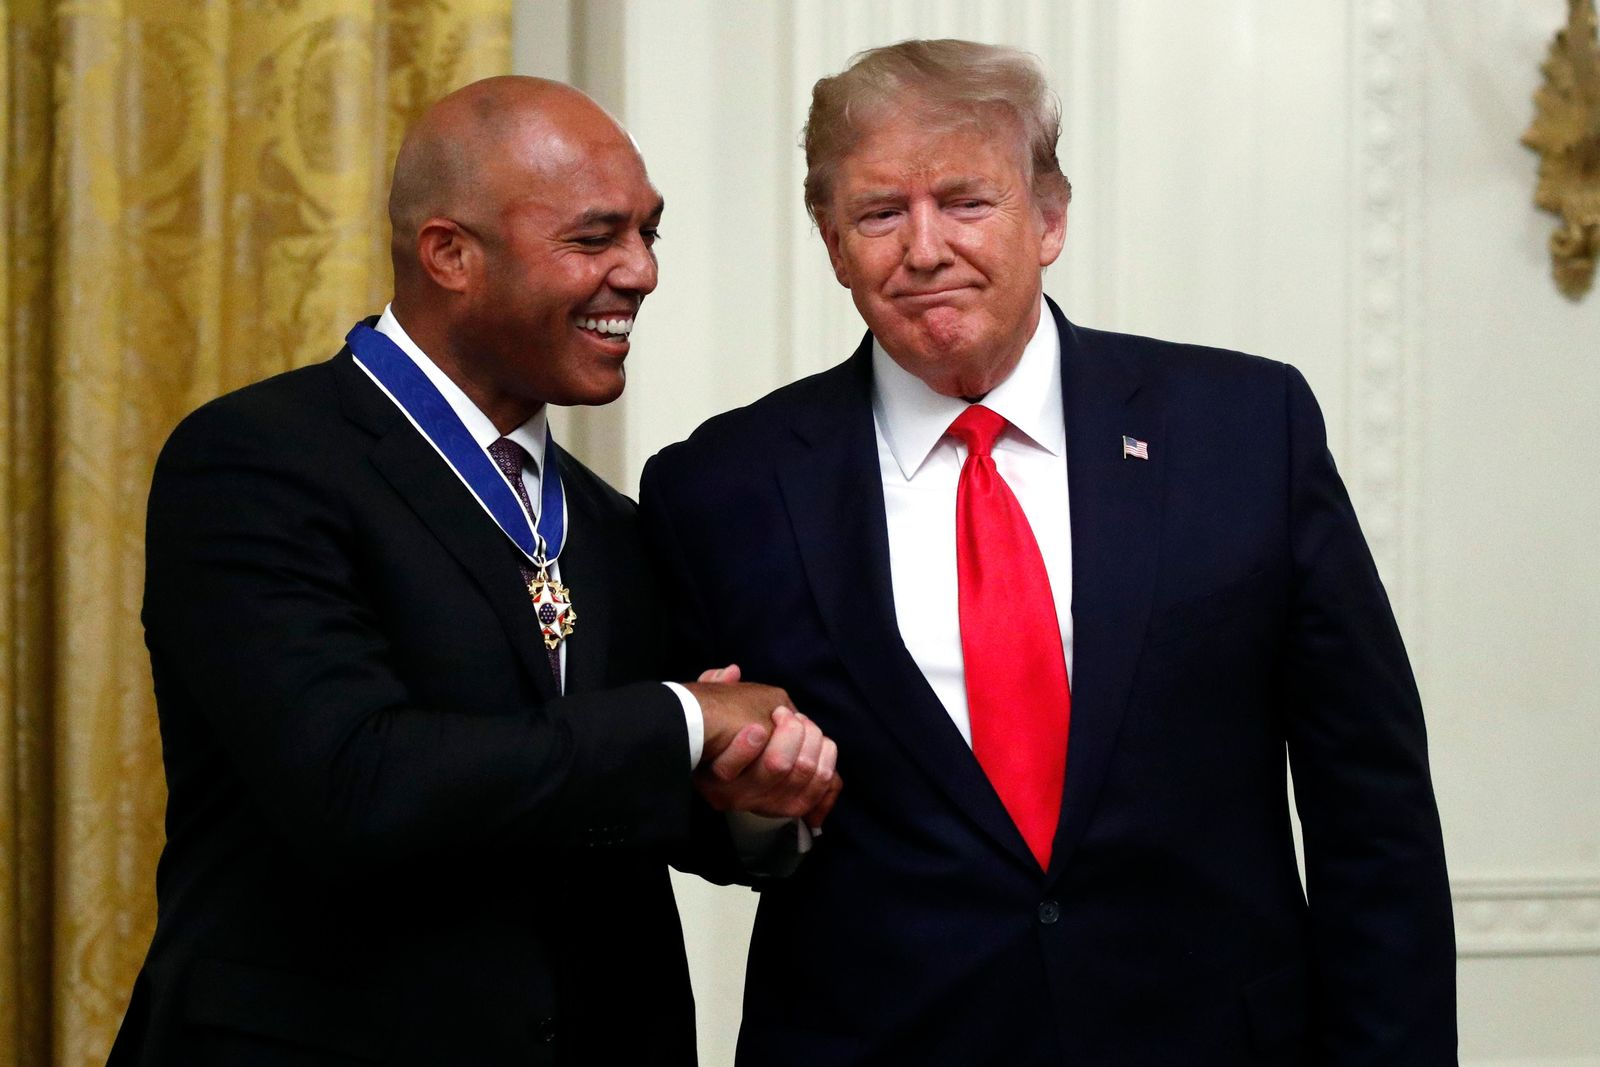 President Donald Trump presents the Presidential Medal of Freedom to former New York Yankees baseball pitcher Mariano Rivera, in the East Room of the White House, Monday, Sept. 16, 2019, in Washington. (AP Photo/Patrick Semansky)